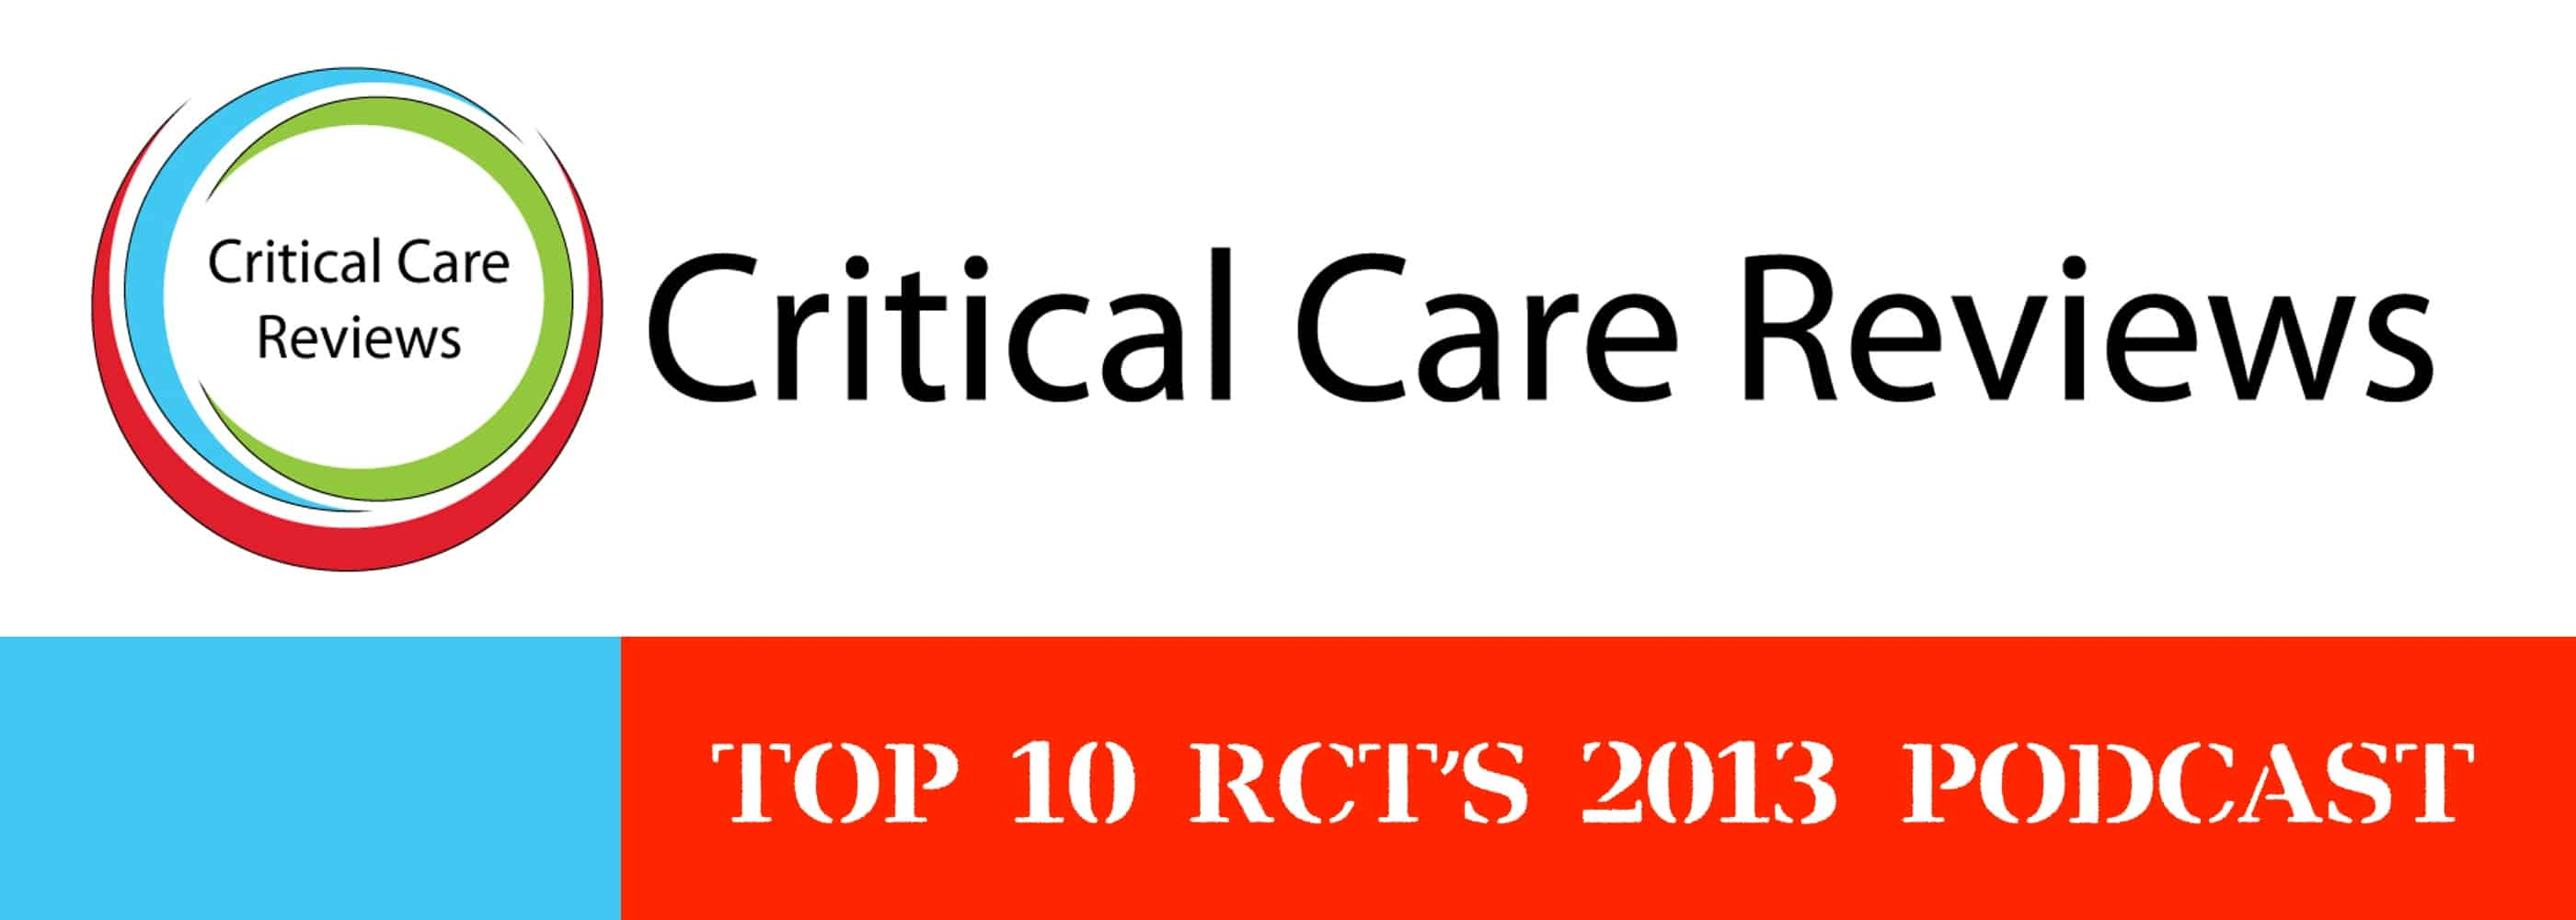 Critical Care Reviews for ICN - TOP 10